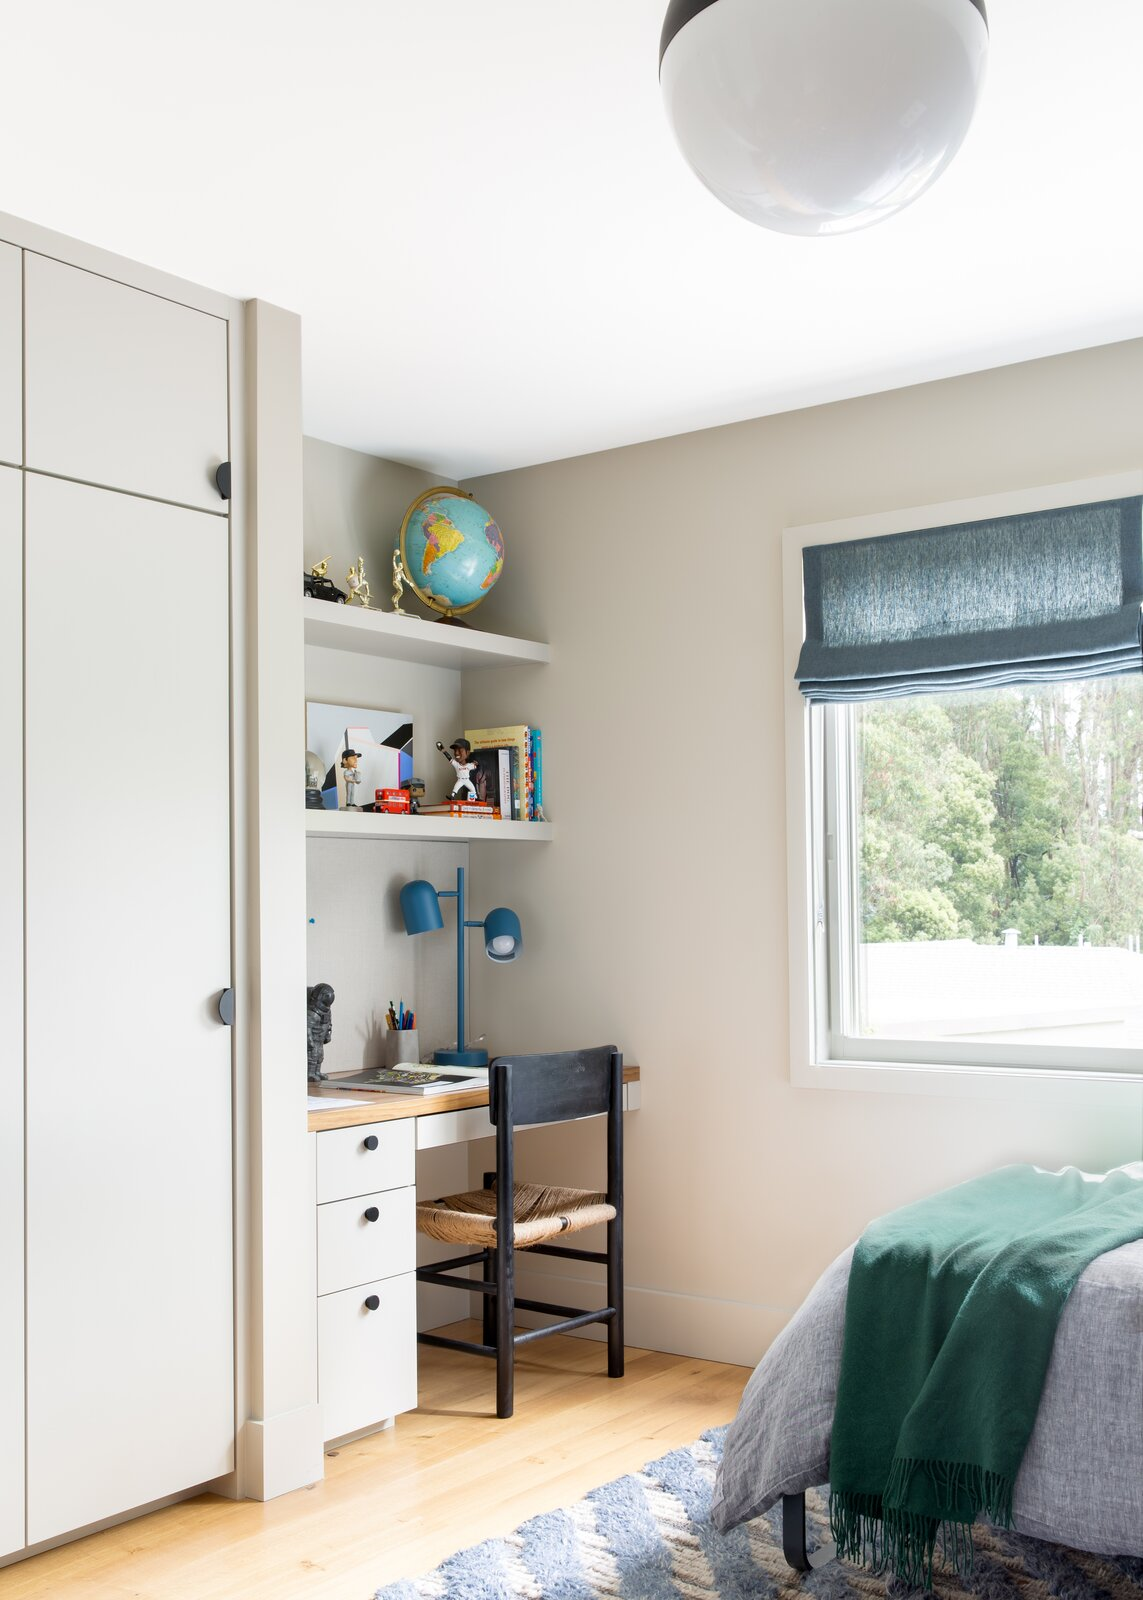 Kids Room, Bedroom Room Type, Shelves, Chair, Light Hardwood Floor, Pre-Teen Age, Lamps, and Rug Floor Everett's built-in desk features trophies, a globe, and a chair by Urban Outfitters.  Photo 11 of 14 in This Colorful House in San Francisco May Be Boxy, but It's Anything but Square